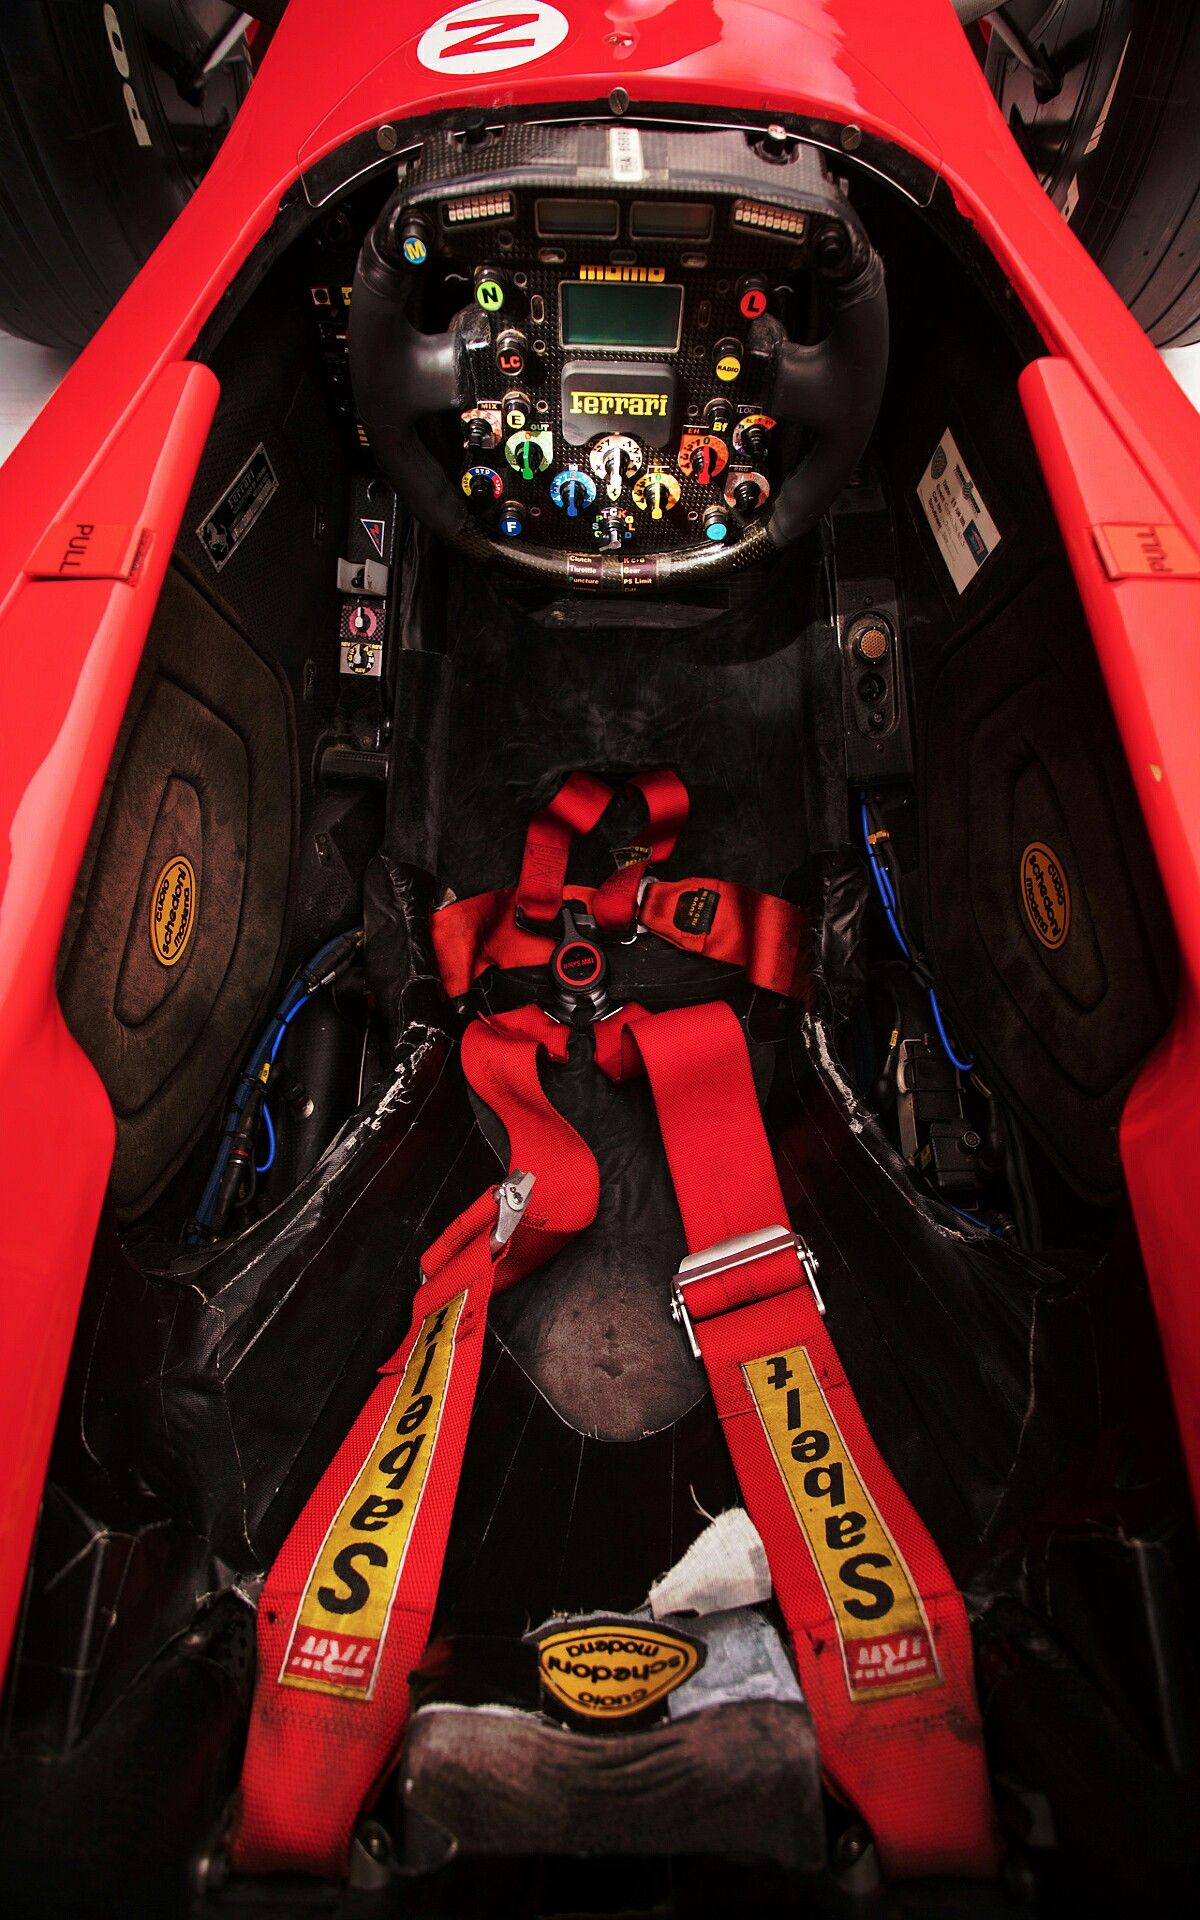 Ferrari F2001 Formula 1 Cockpit Is Were Michael Schumacher Piloted To The 2001 Formula 1 World Championship Image E In 2020 Ferrari Michael Schumacher Formula 1